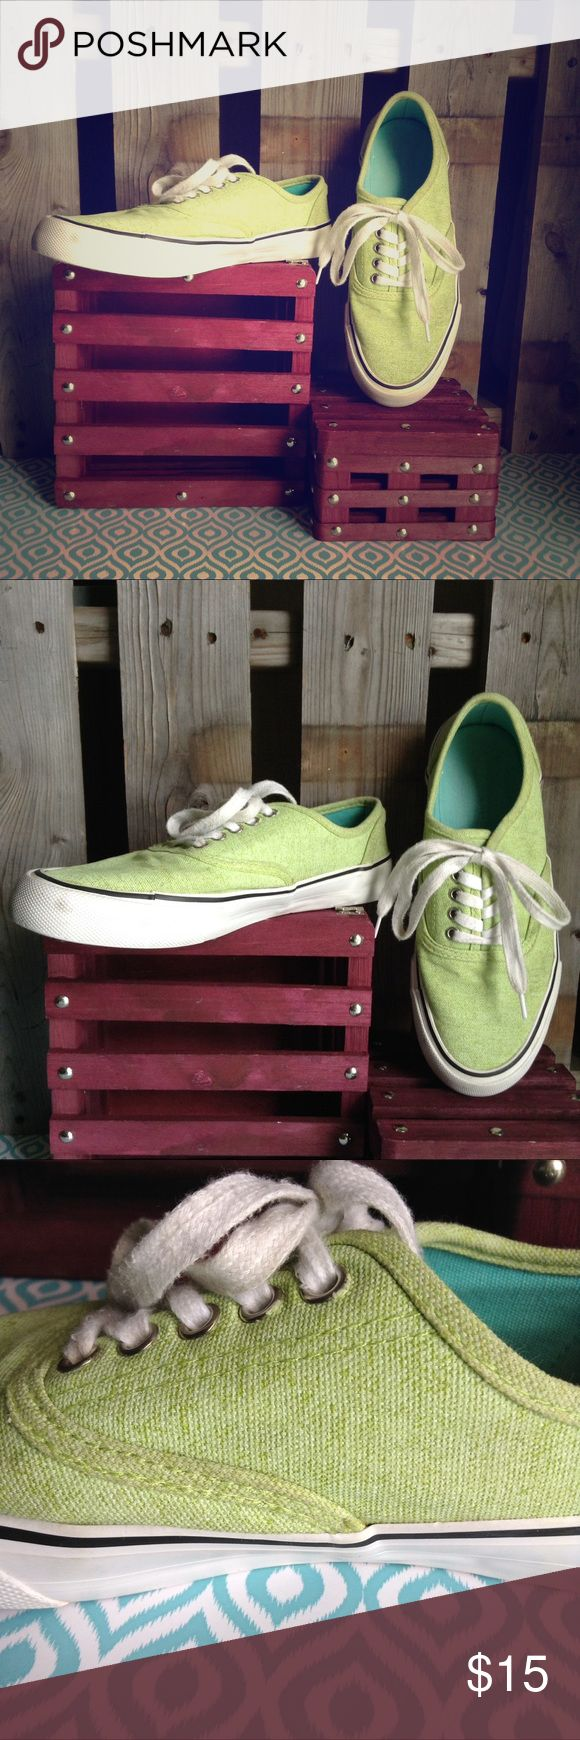 Mossimo Mint green tweed denim weave target vans Good used condition. Light wear. All flaws pictured. Not vans branded. Mossimo target brand. Size 8. True to size. Mossimo Supply Co Shoes Sneakers